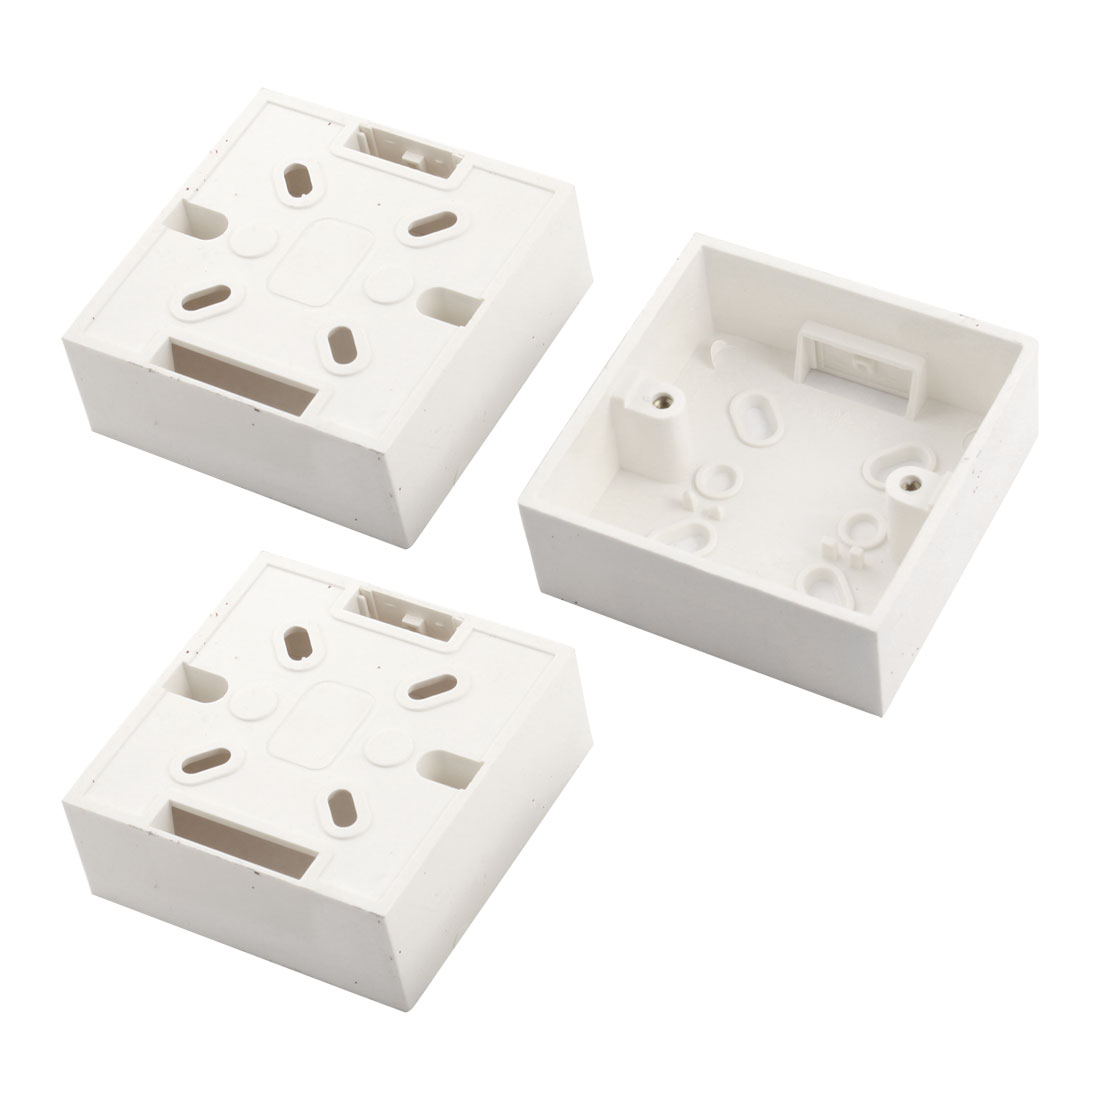 3Pcs 86mmx86mmx33mm Square Mount Back Box for Wall Socket